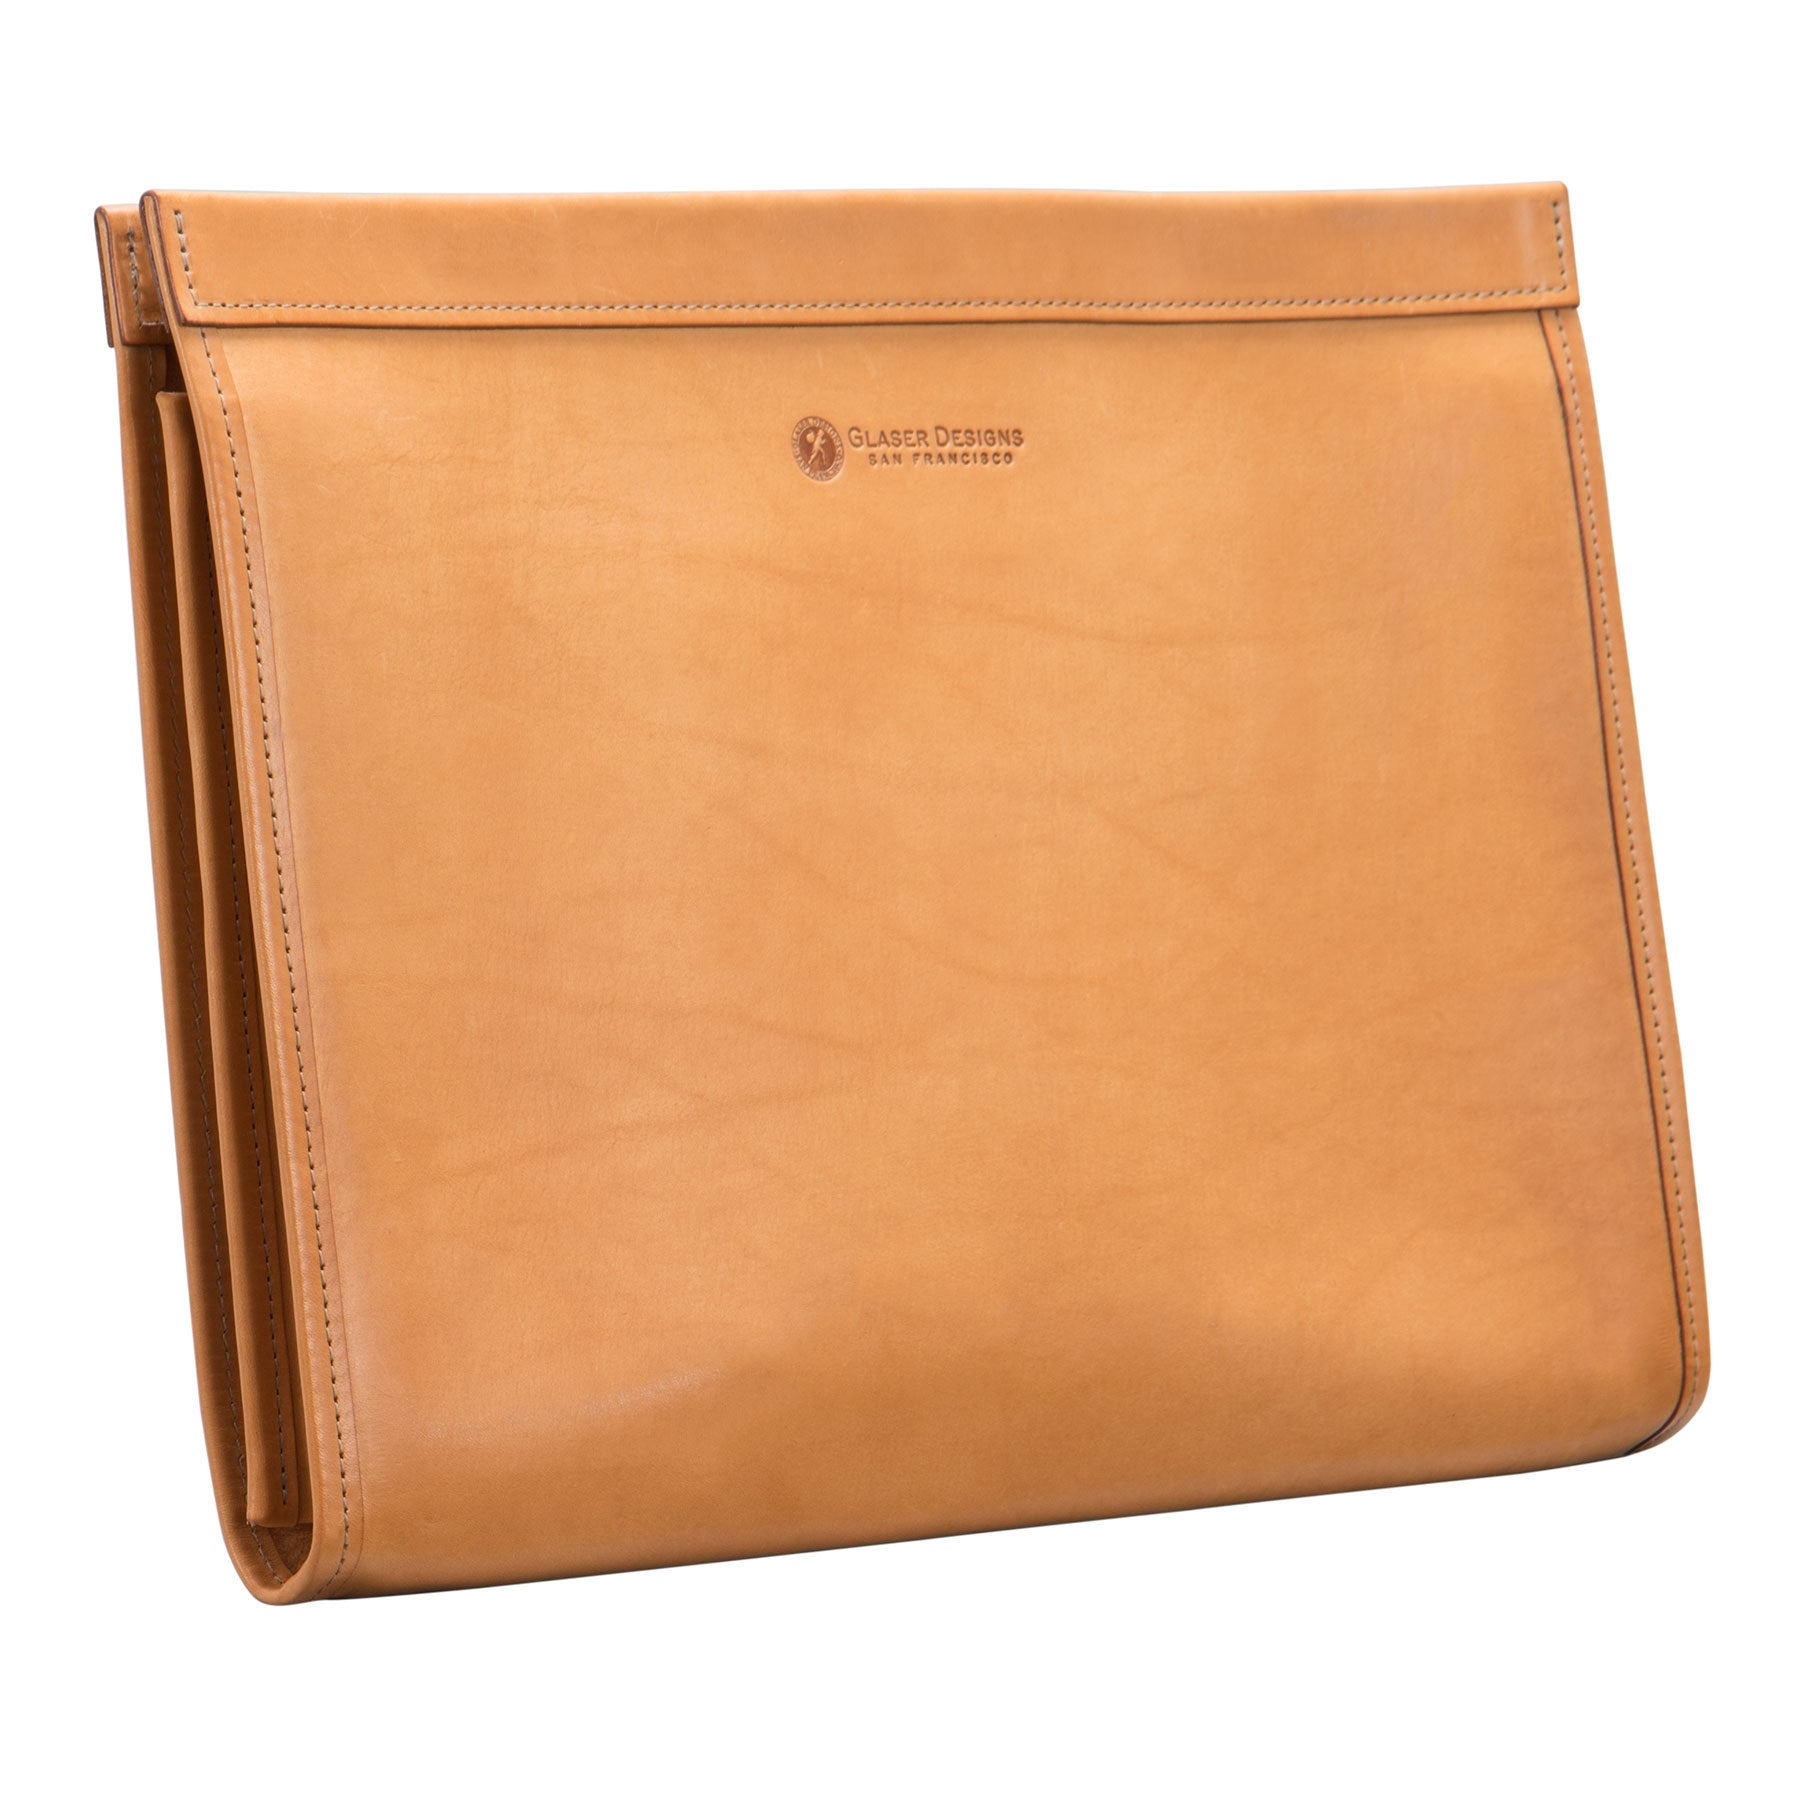 Leather Portfolio with Magnetic Closure: Hand-Burnished Leather